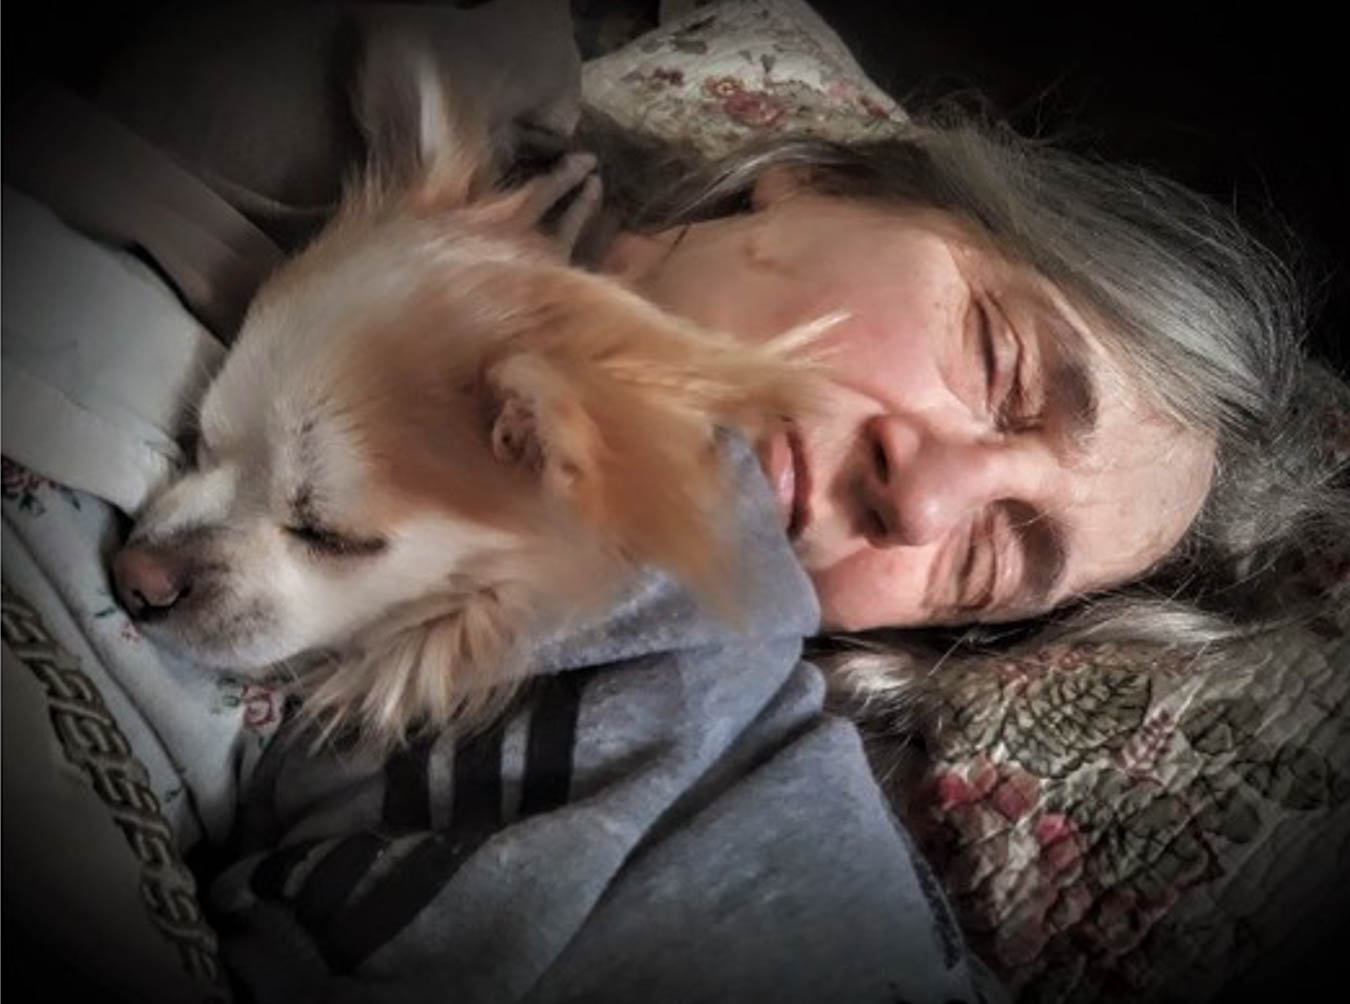 Digital close-up of a woman's face and small dog asleep.